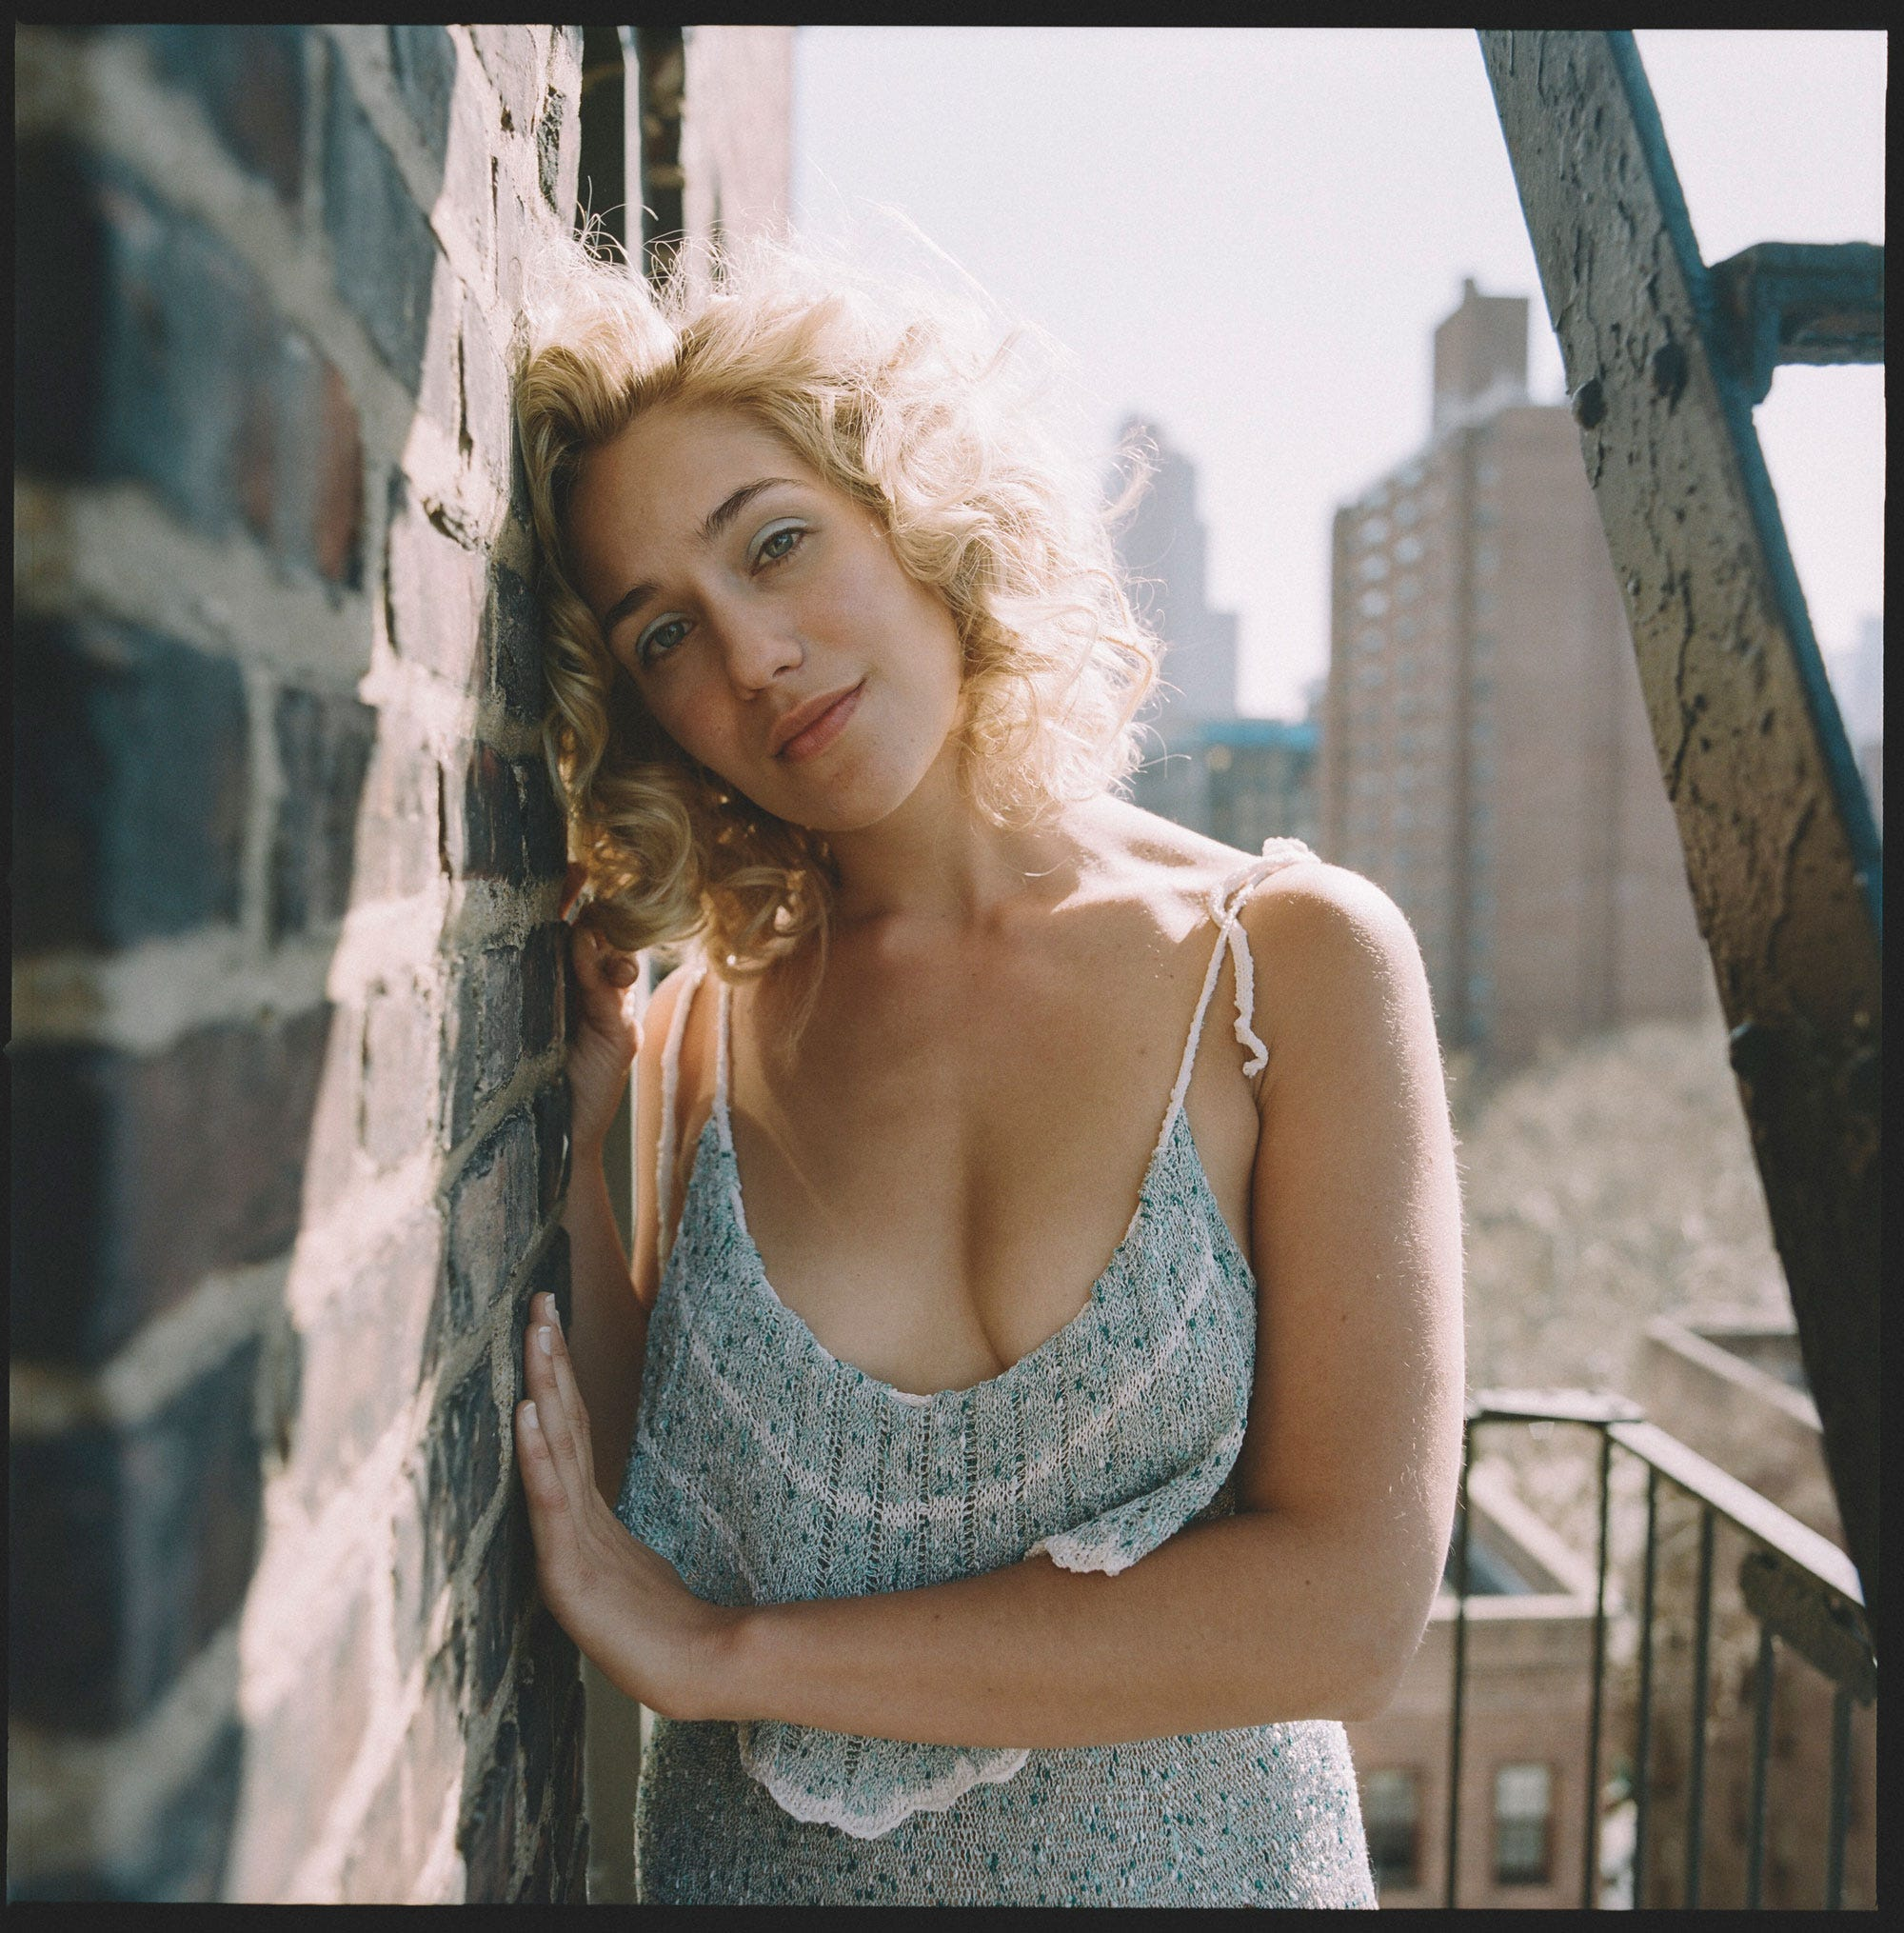 ICloud Lola Kirke naked (69 photos), Sexy, Is a cute, Twitter, lingerie 2015